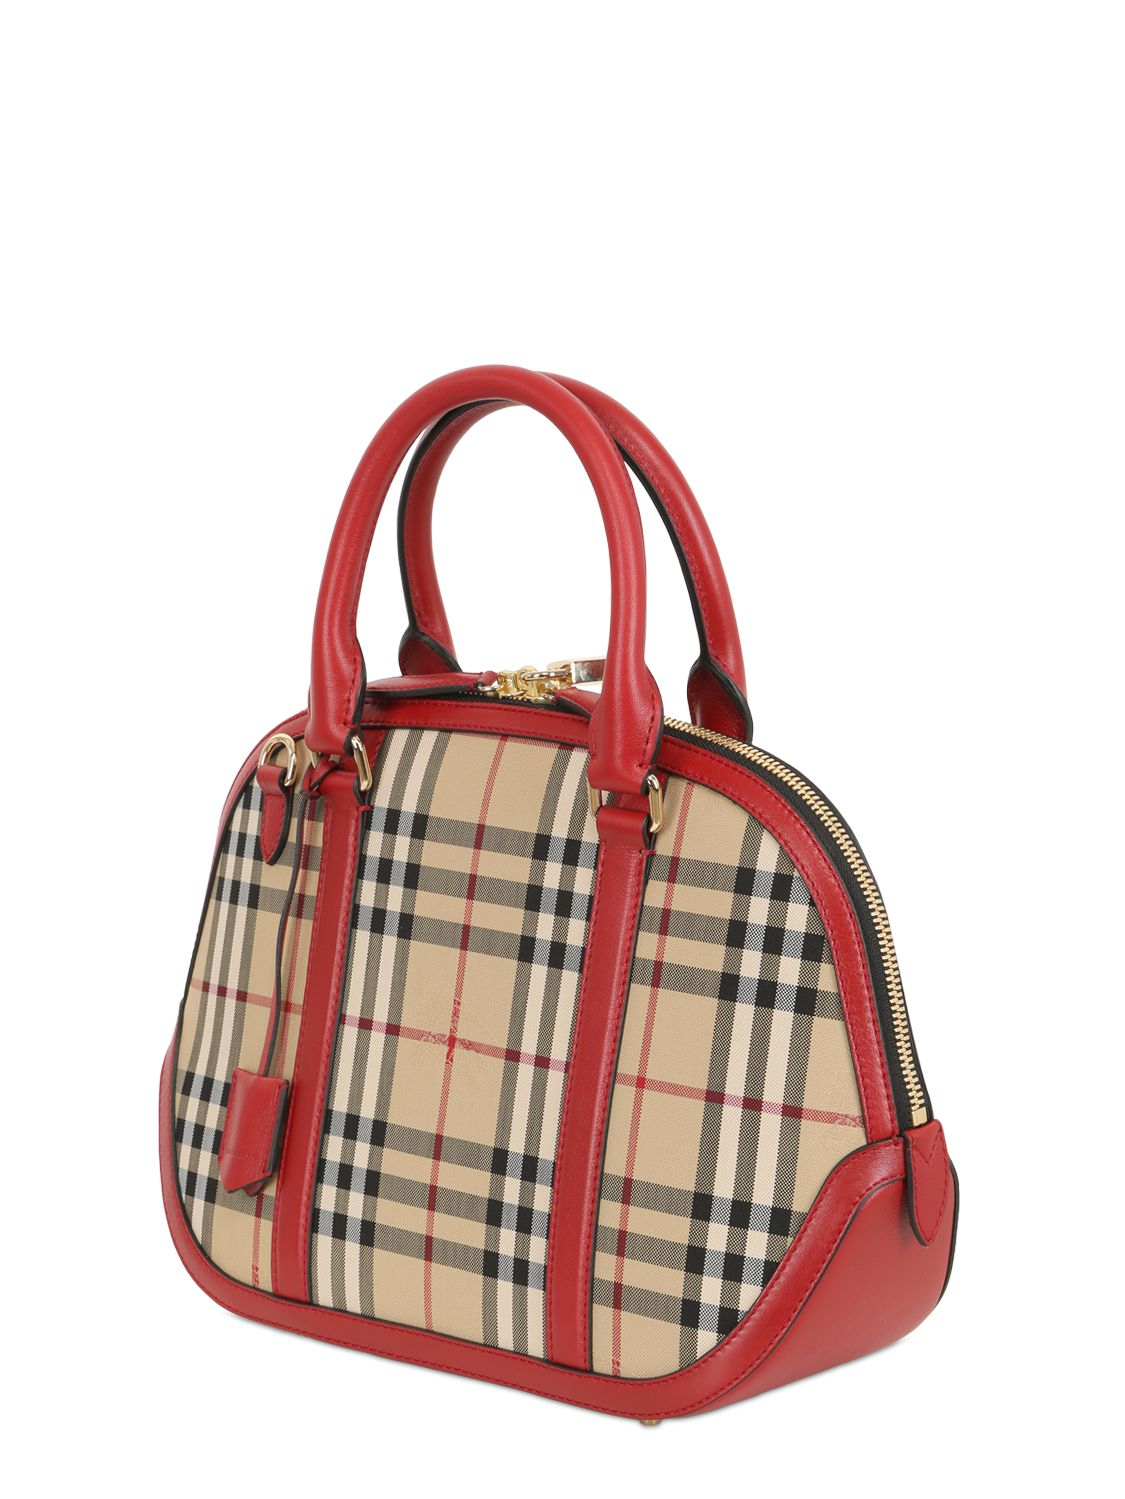 Lyst - Burberry Small Orchard Bridle House Check Bag in Red d16c42fd68